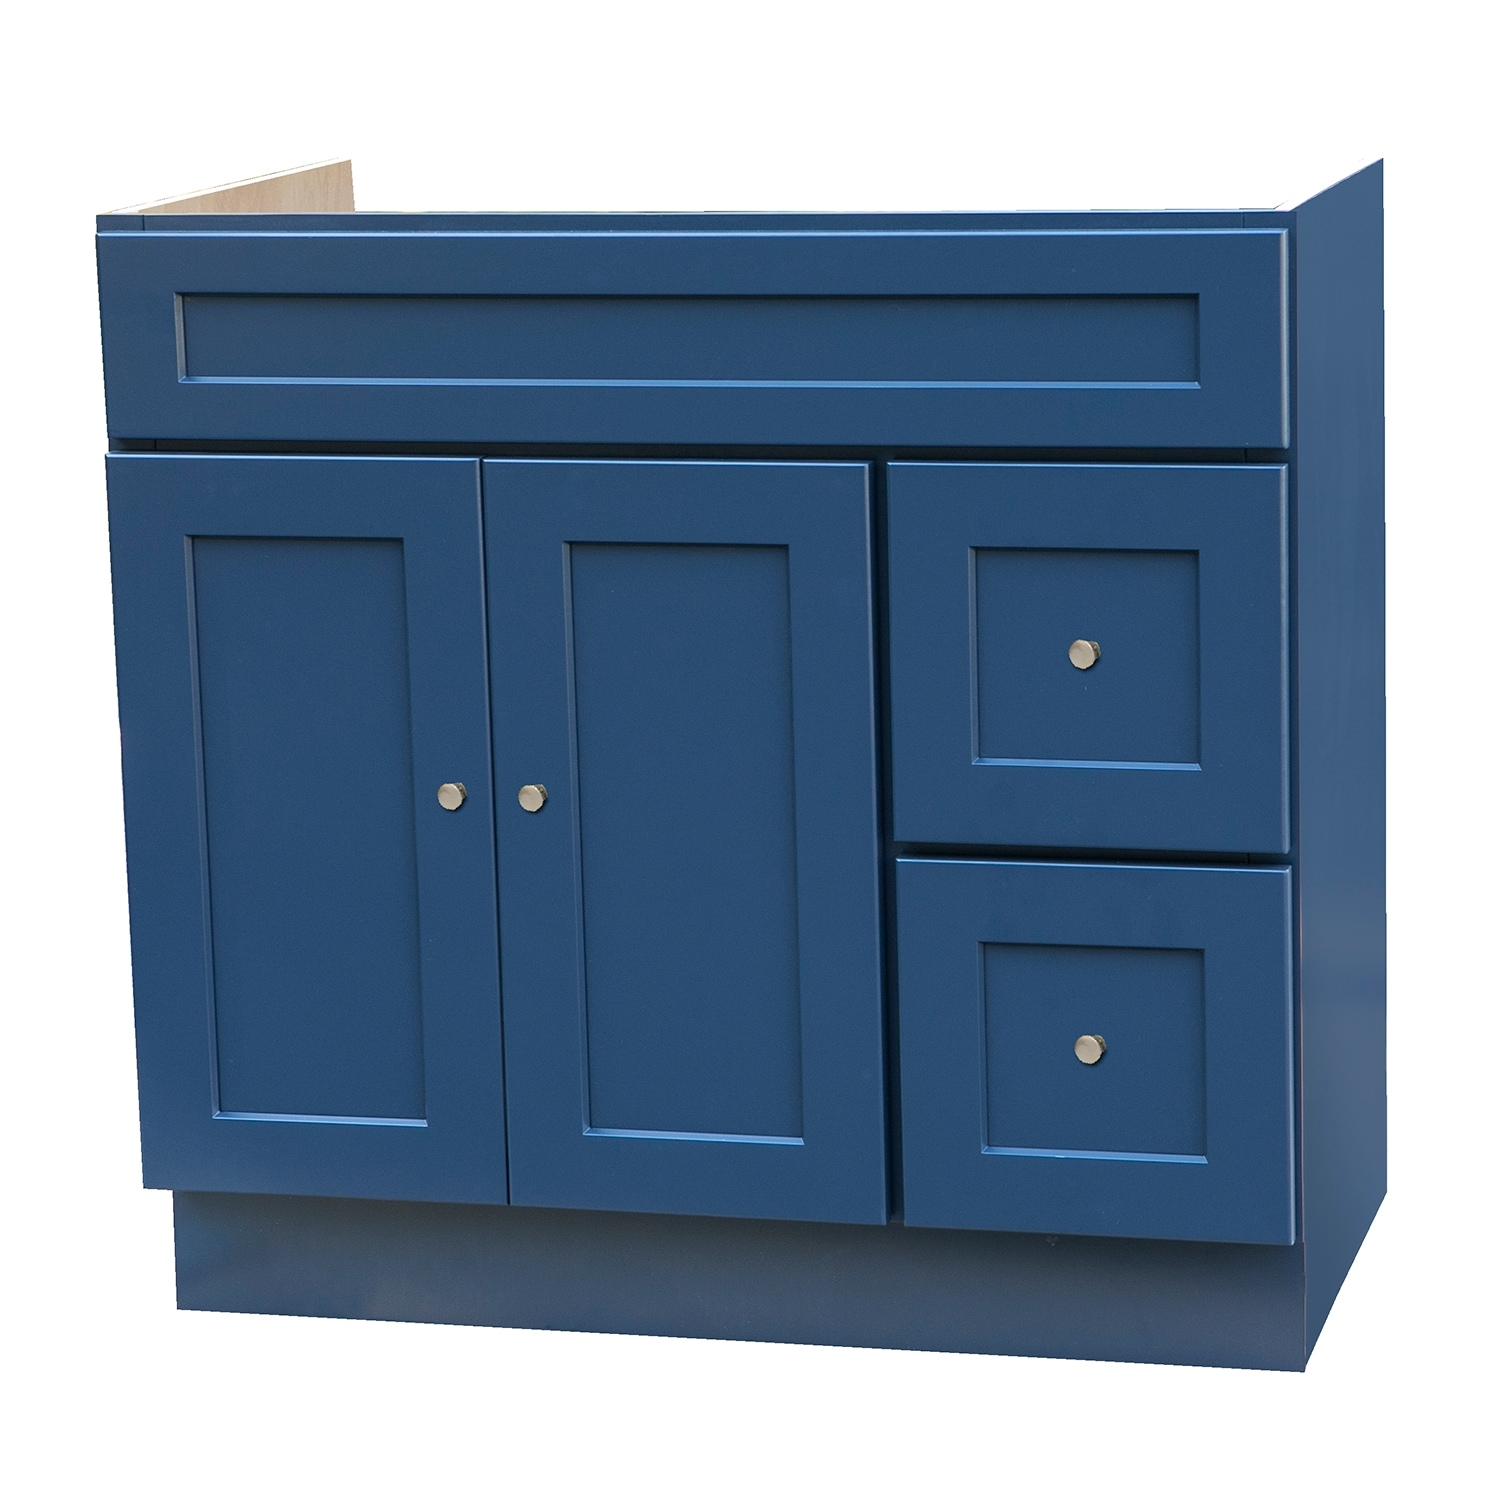 36x21 Blue Shaker Bathroom Vanity With Drawers Overstock 32468391